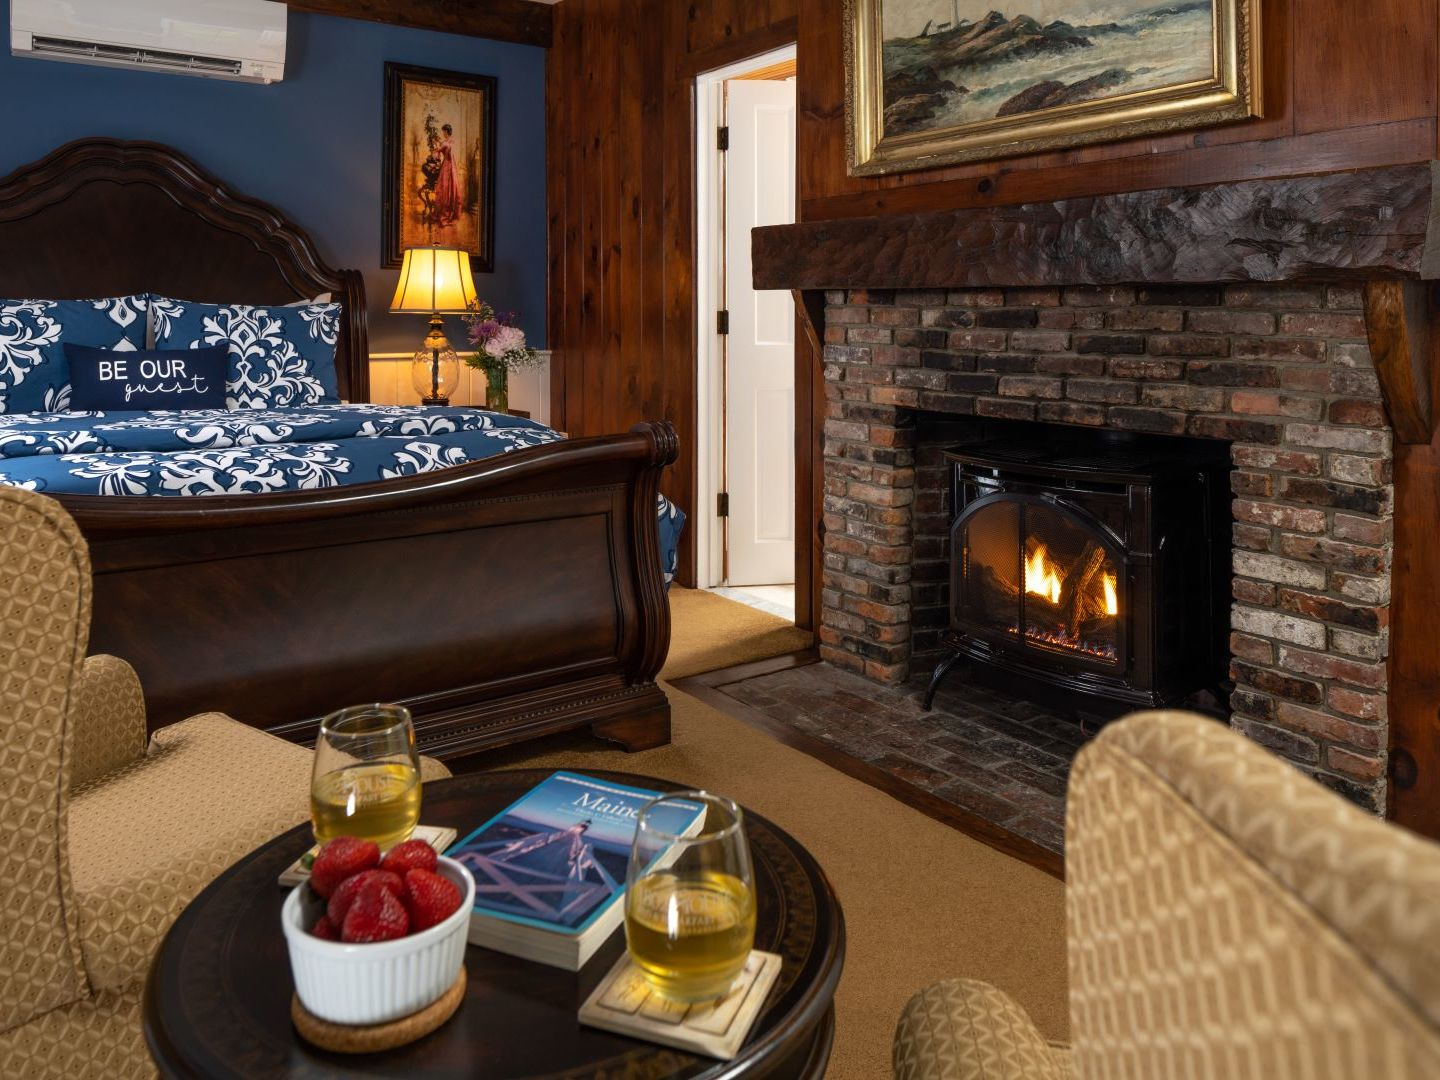 A fire place sitting in a living room with a fireplace at 1802 House Bed and Breakfast Inn.